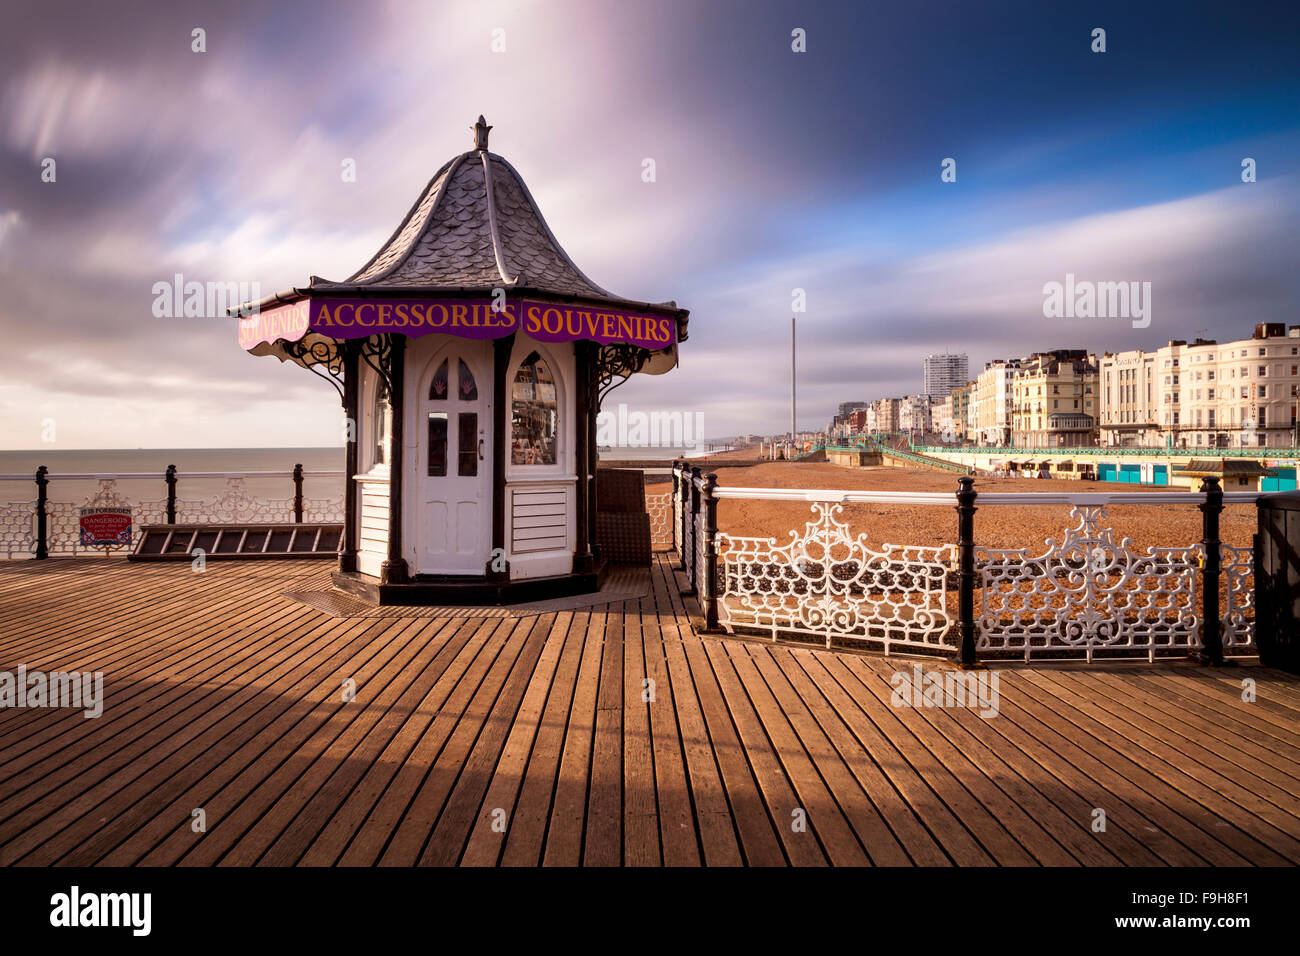 Brighton Pier, Brighton, Sussex, UK Stockbild